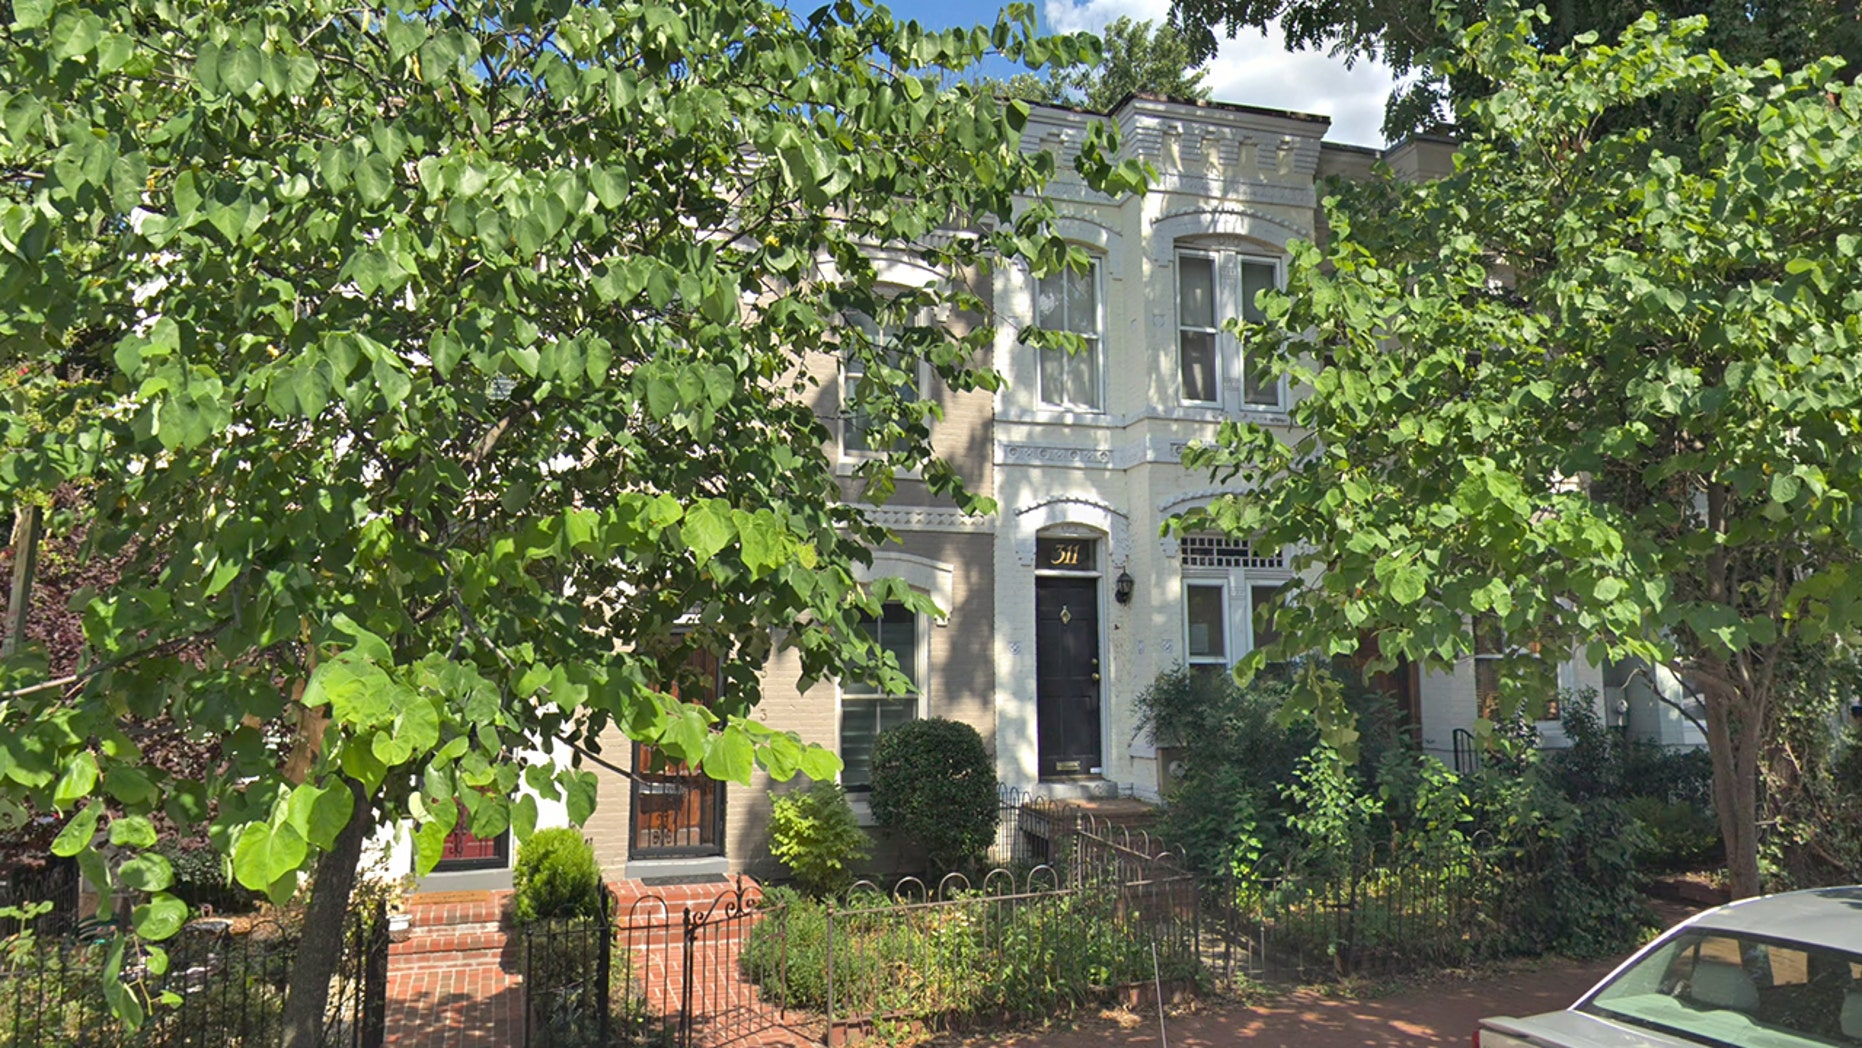 Bernie Sanders house in District of Columbia